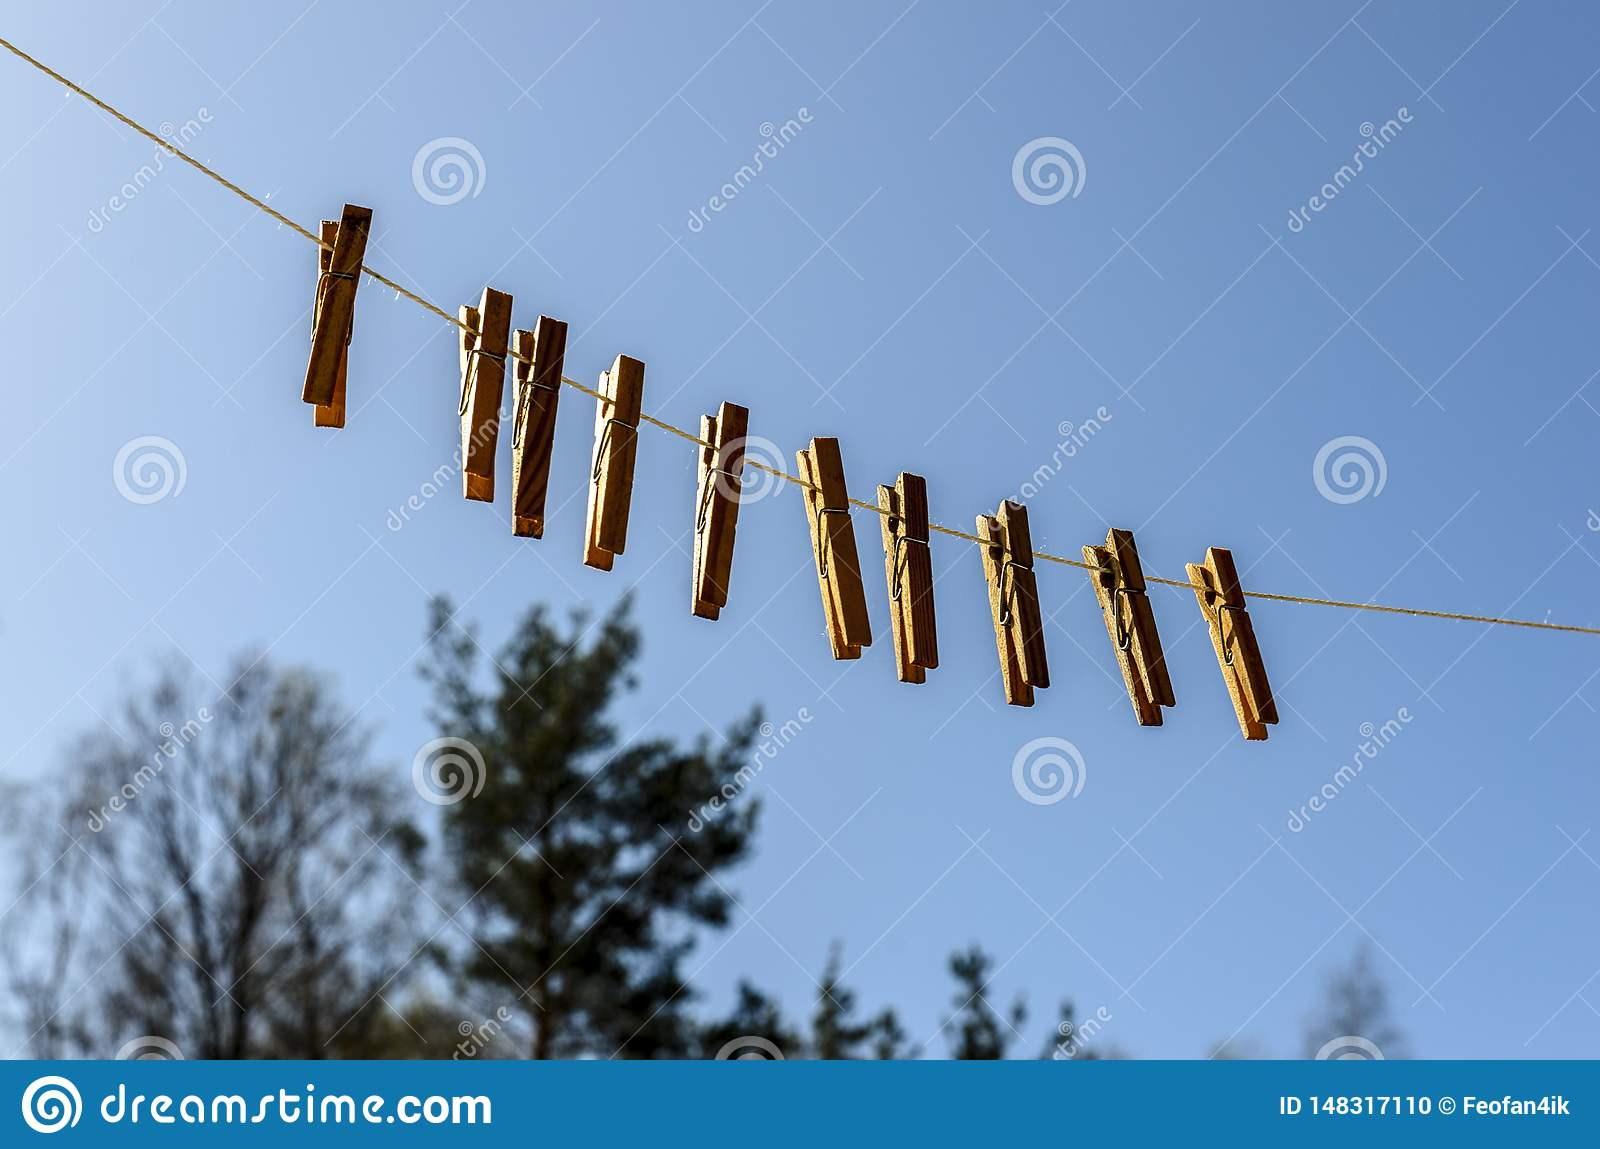 Clothespins for clothes and clothes hang against the blue sky on a Sunny day on a